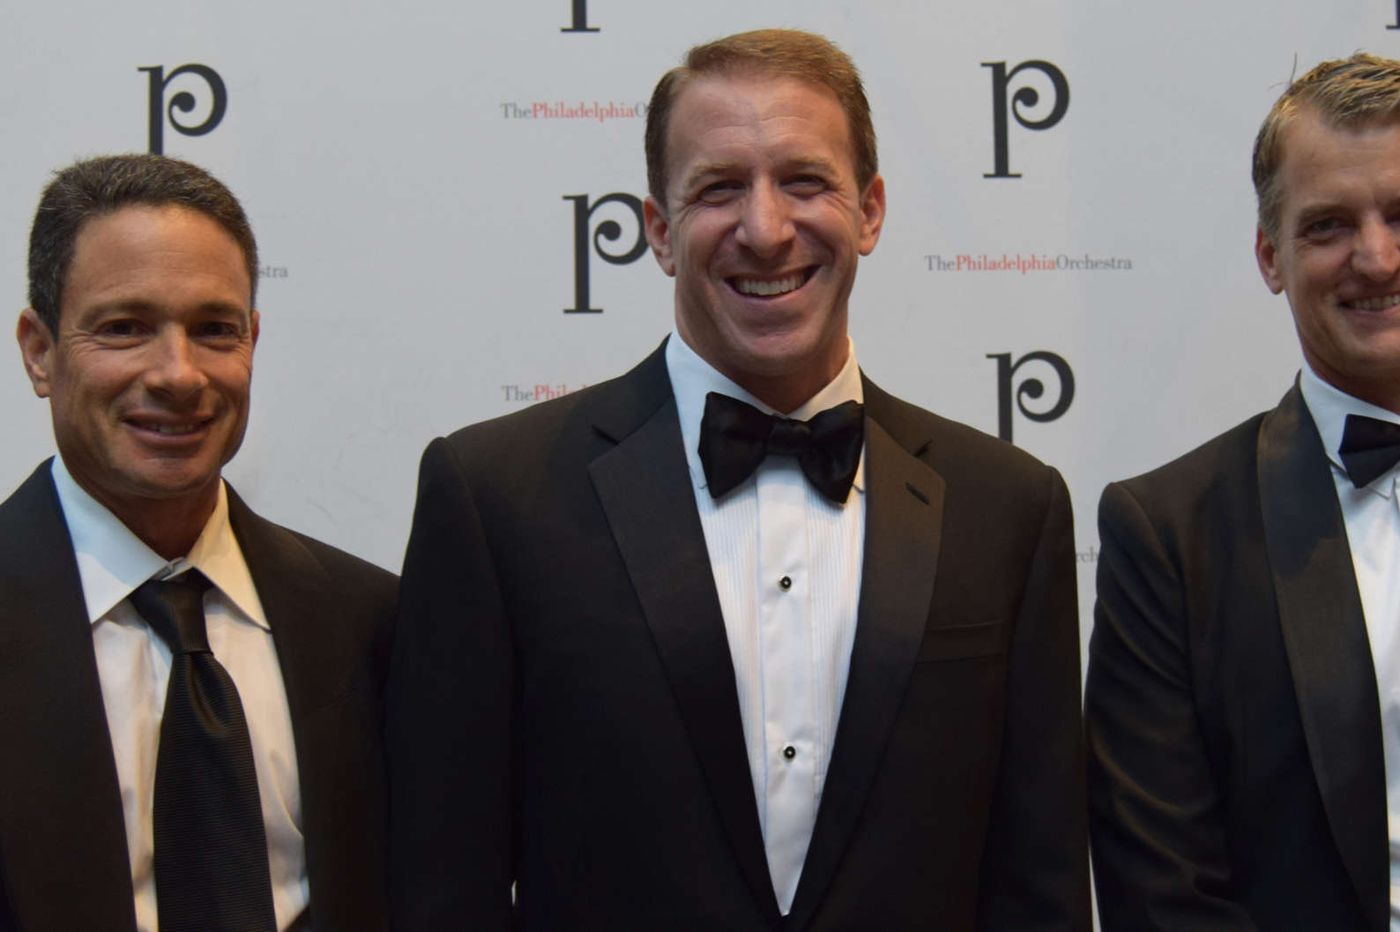 Gary Frank, ex board member of Philadelphia Orchestra, pleads guilty to fraud, money laundering